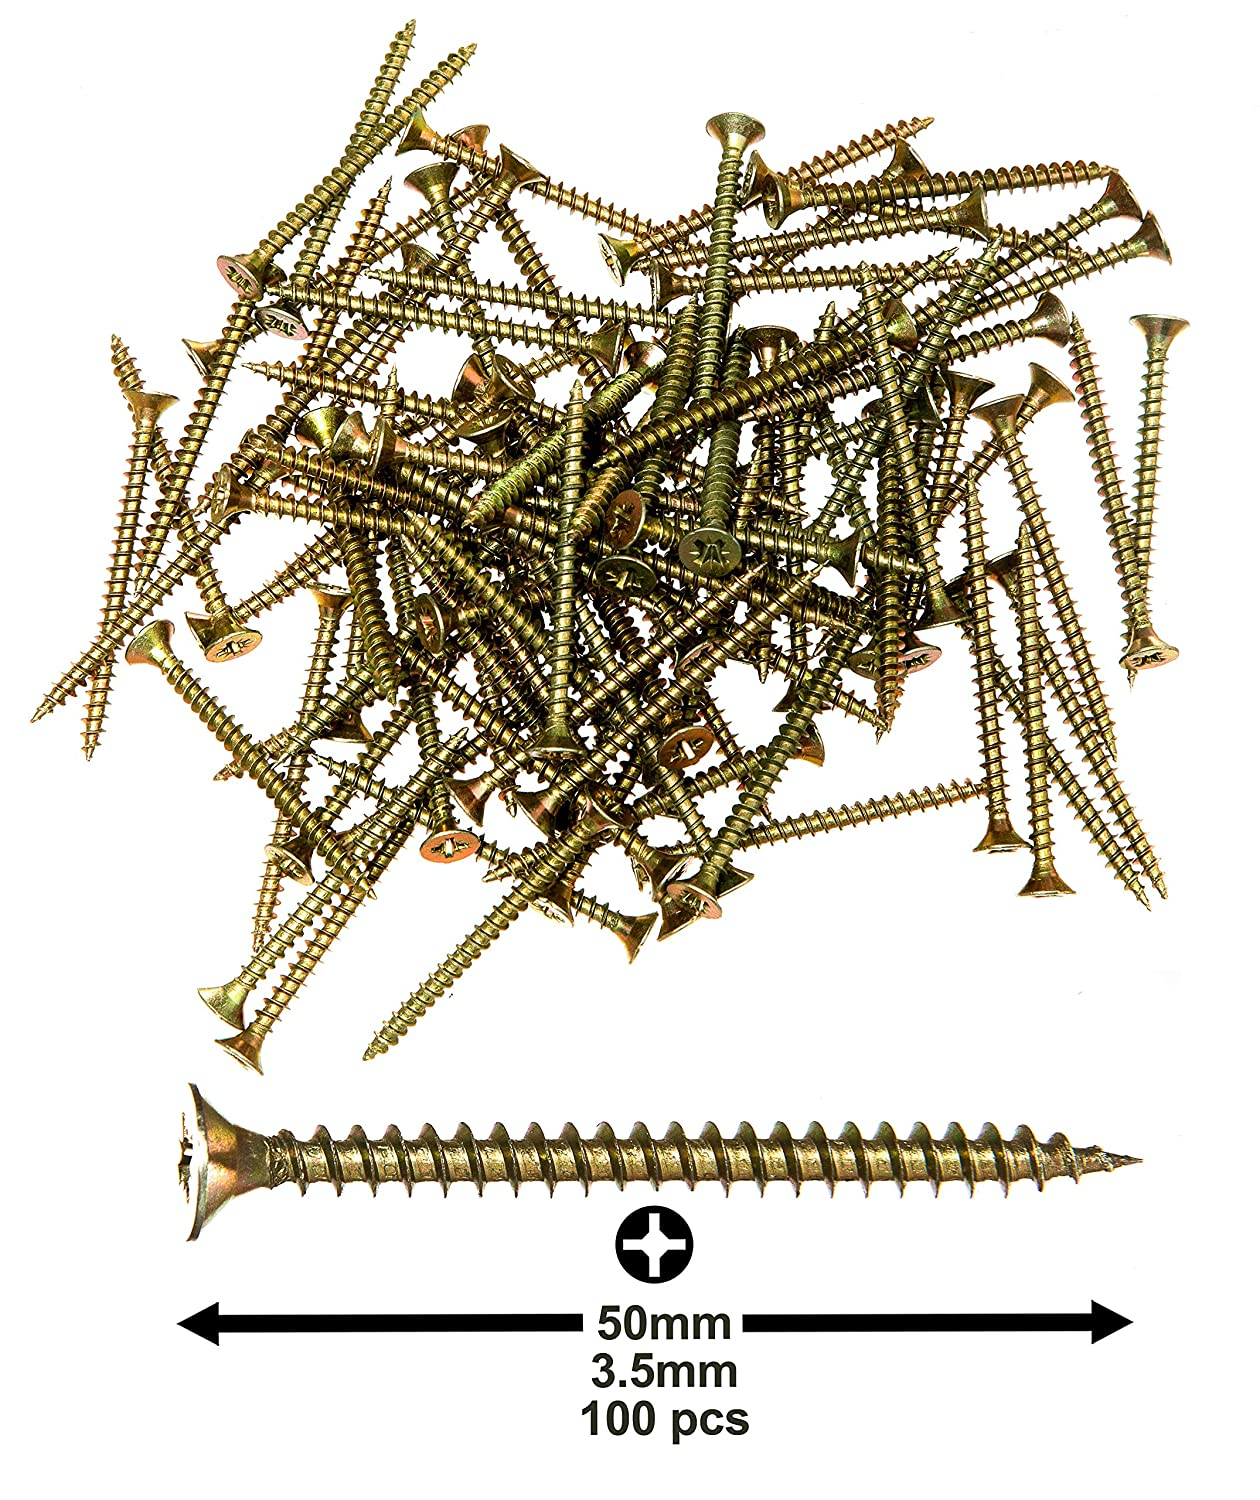 "9//64/""X2/"" Commercial-Grade Heavy Duty Zinc-Coated Steel Countersunk Pozi-Drive Head Screws for All Types of Wood Allkit Wood Screws 100pcs 3.5X50mm"